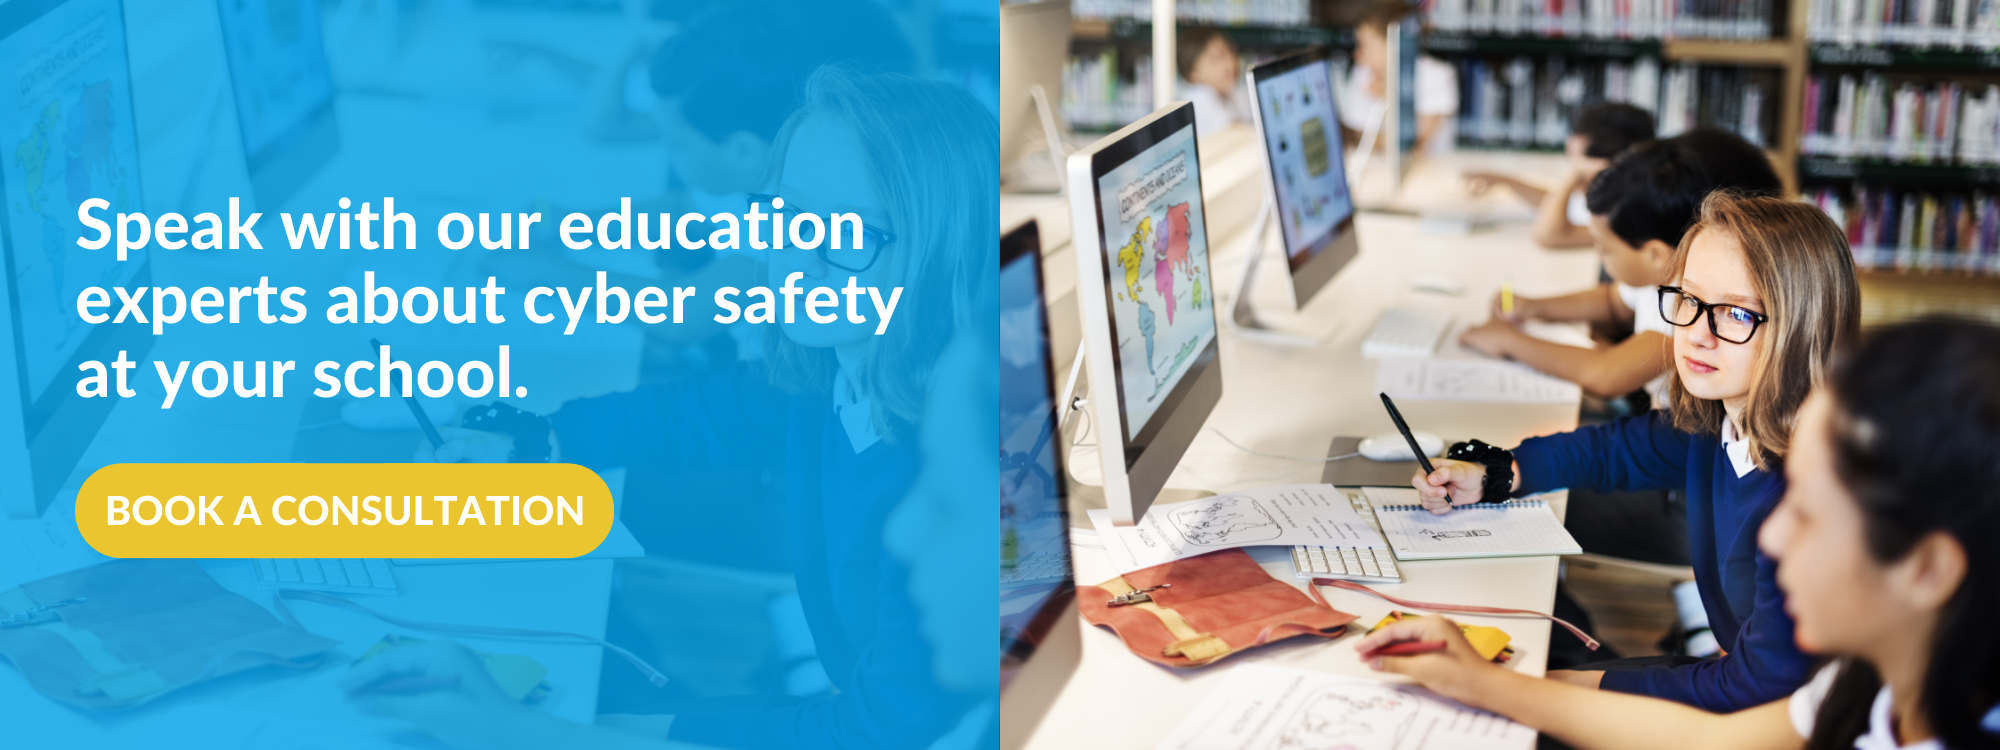 Speak with our education experts about cyber safety at your school - Book a Consultation